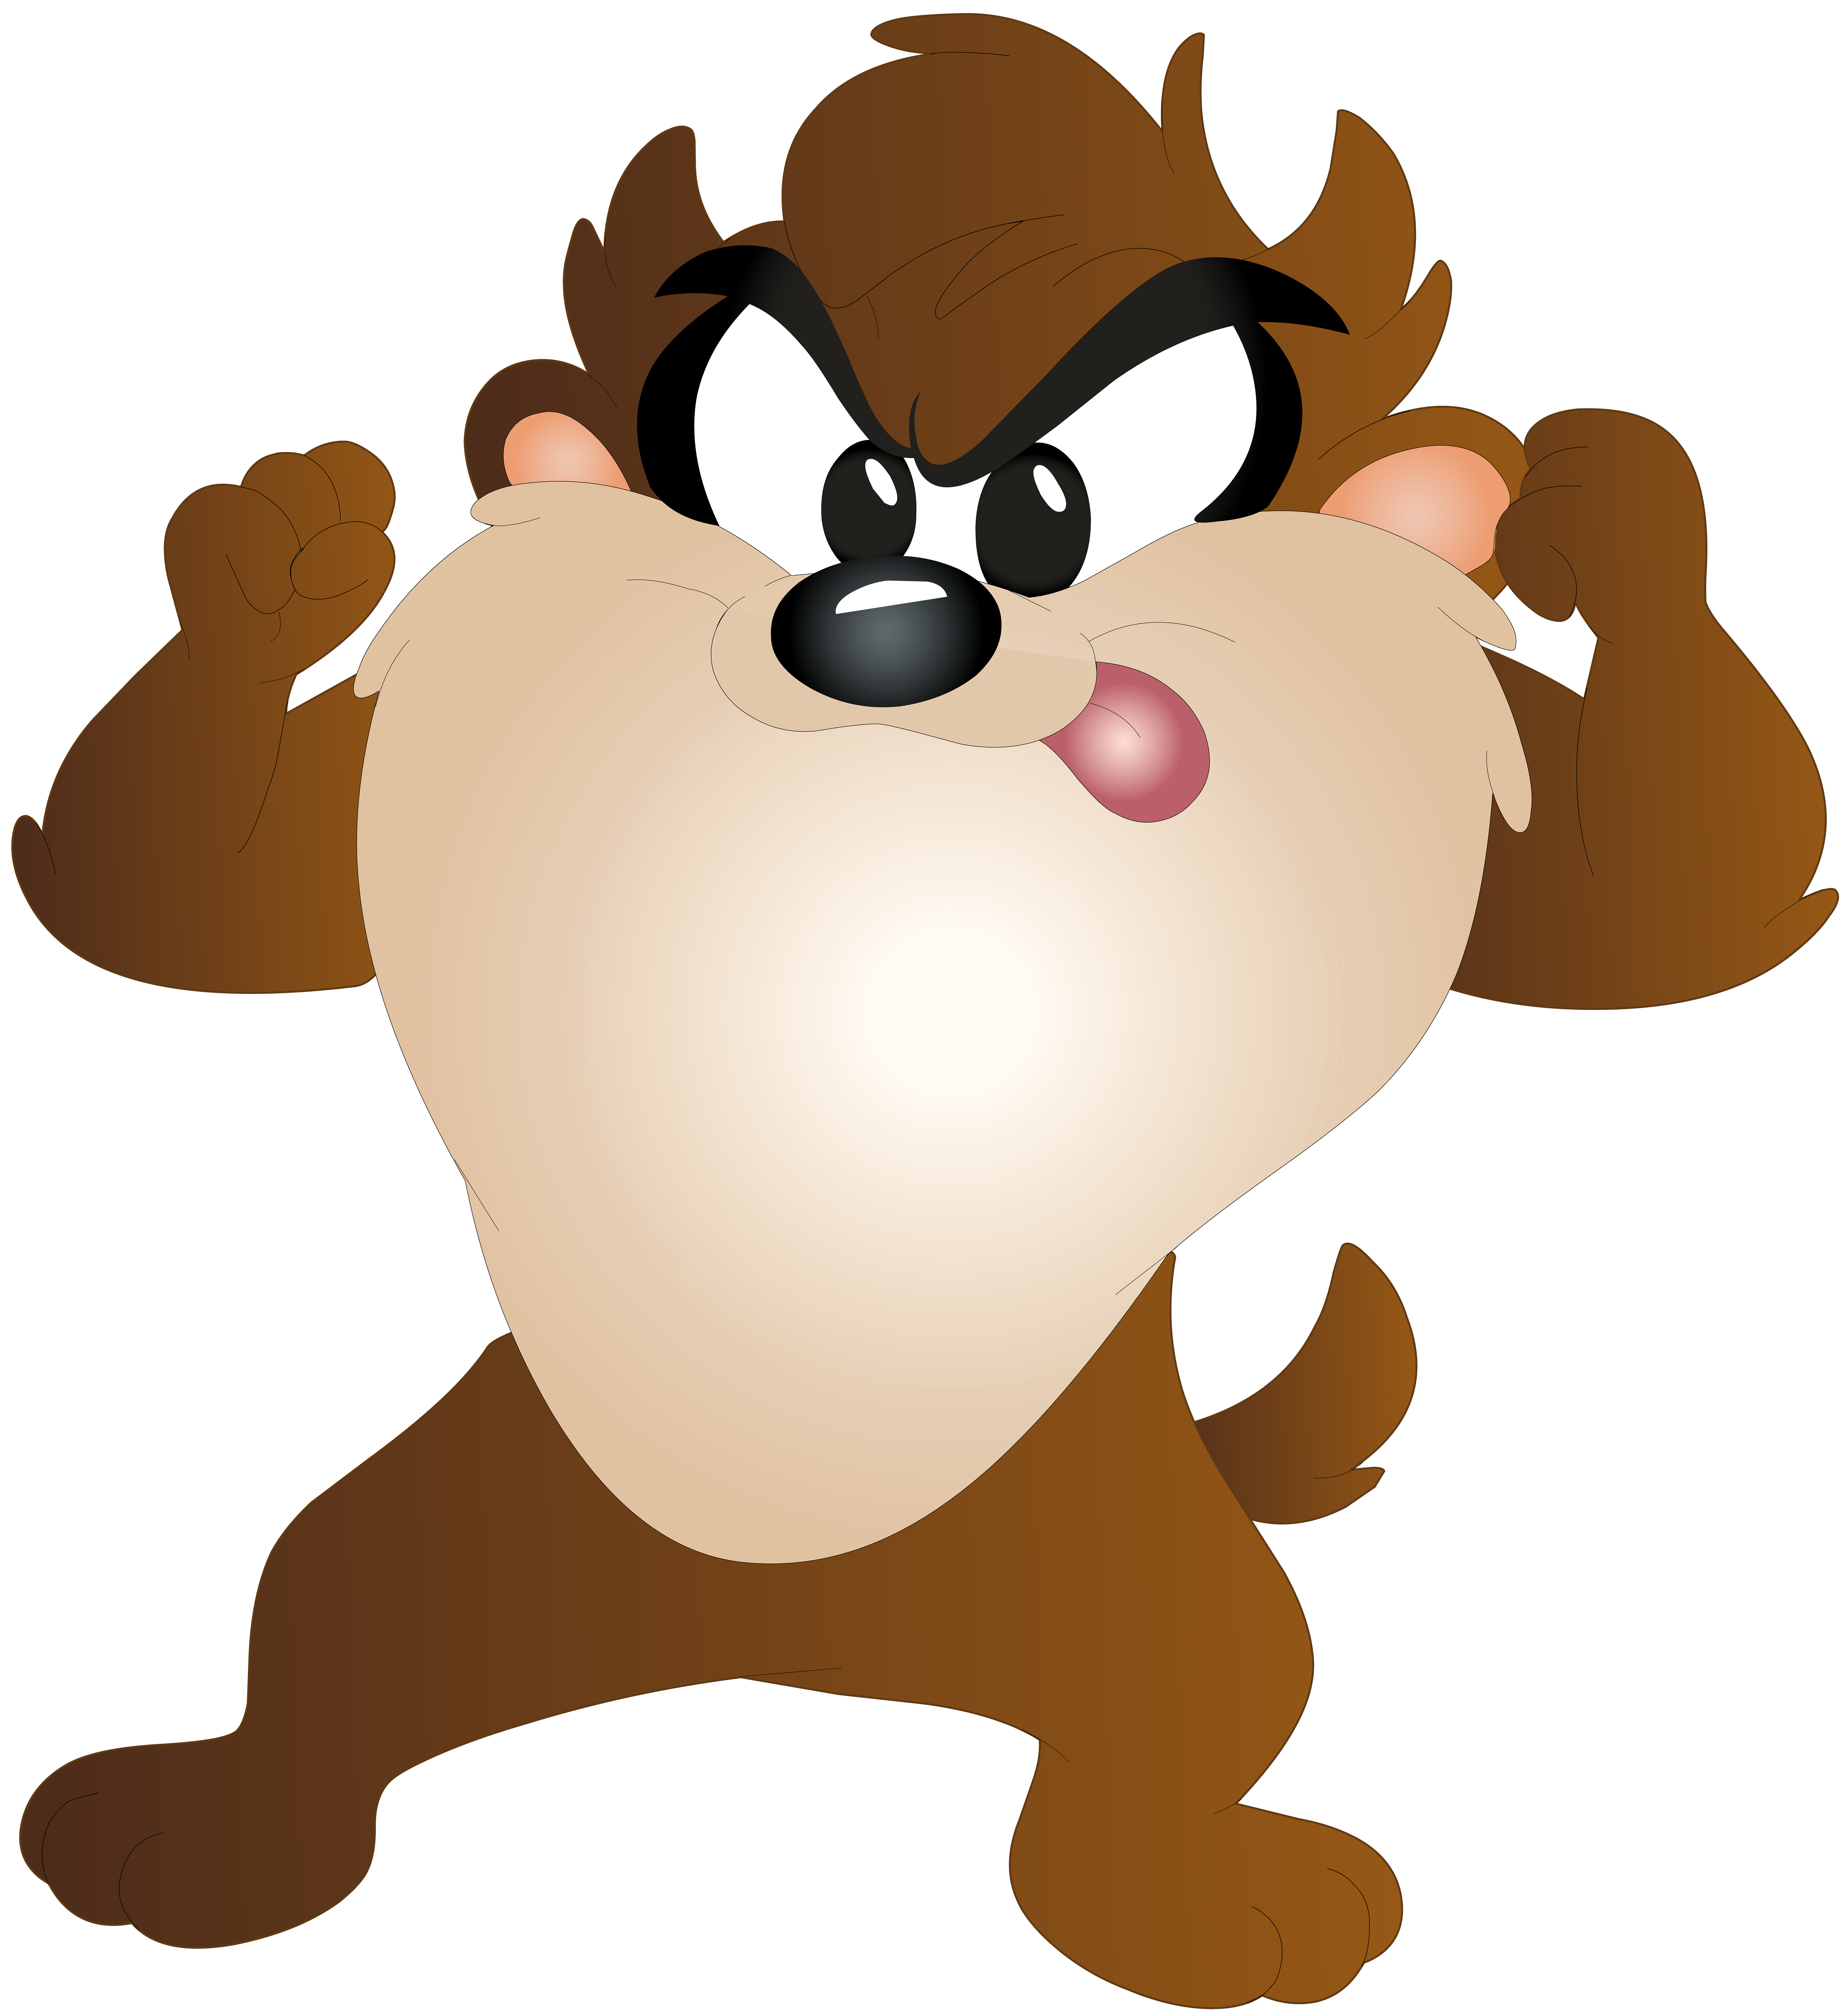 Taz kid free png. Kind clipart kids cartoon